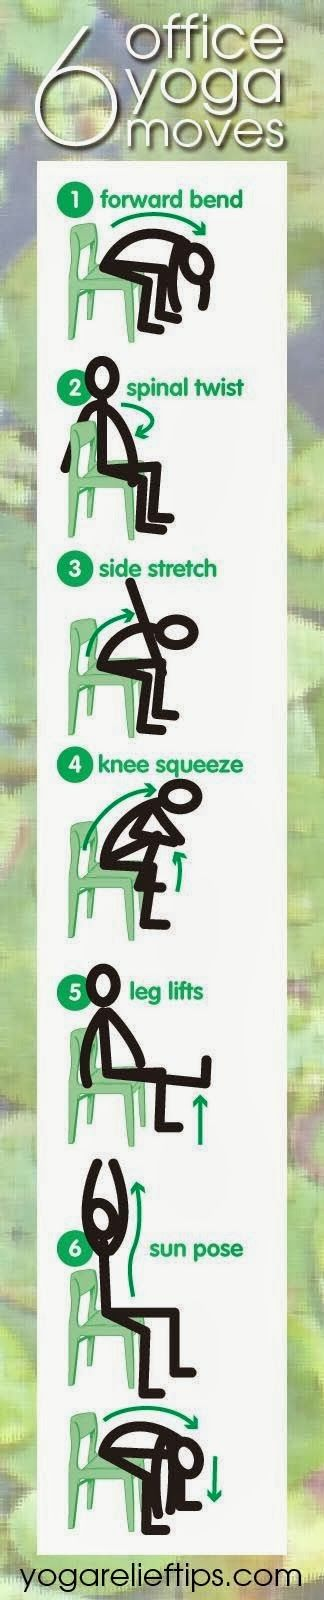 "Not so much about ""office"" but I could do some of these without hurting my knees."